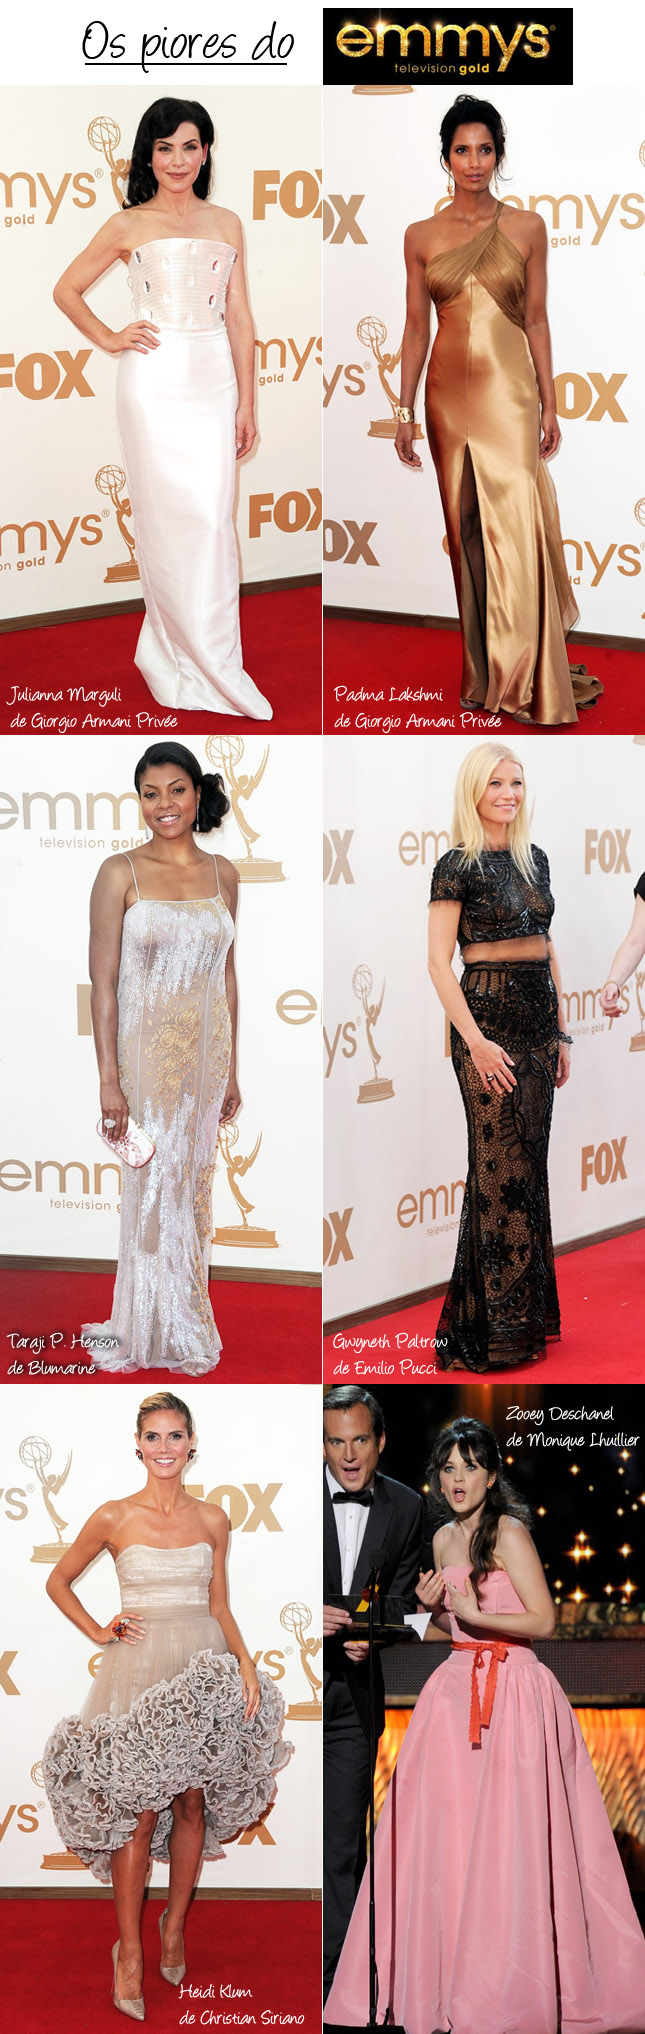 Os Vestidos Mais Feios do Emmy